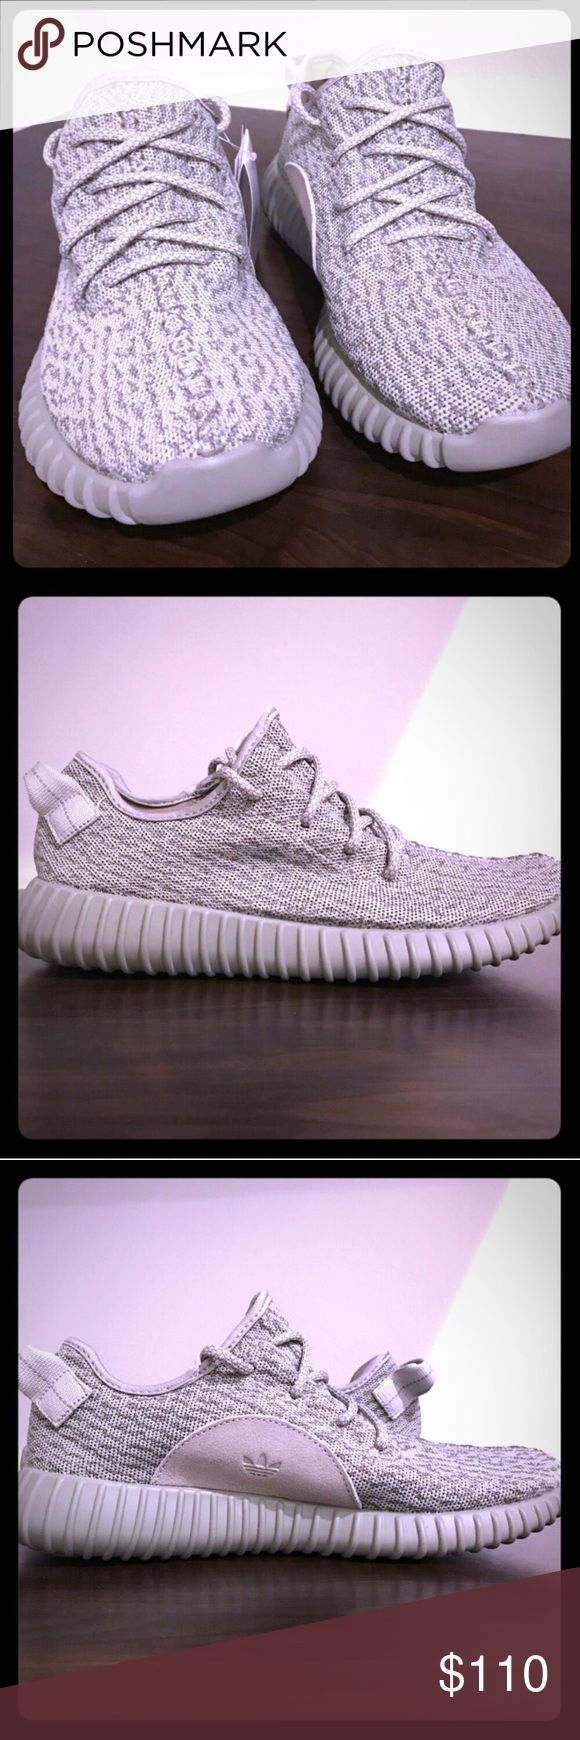 Adidas Yeezy 350 Boosts moonrock Adidas Yeezy 350 Boosts, moonrocks, never worn, US size 11, these are exact 'replicas' I don't have receipt (hence the low price) Adidas Shoes Athletic Shoes